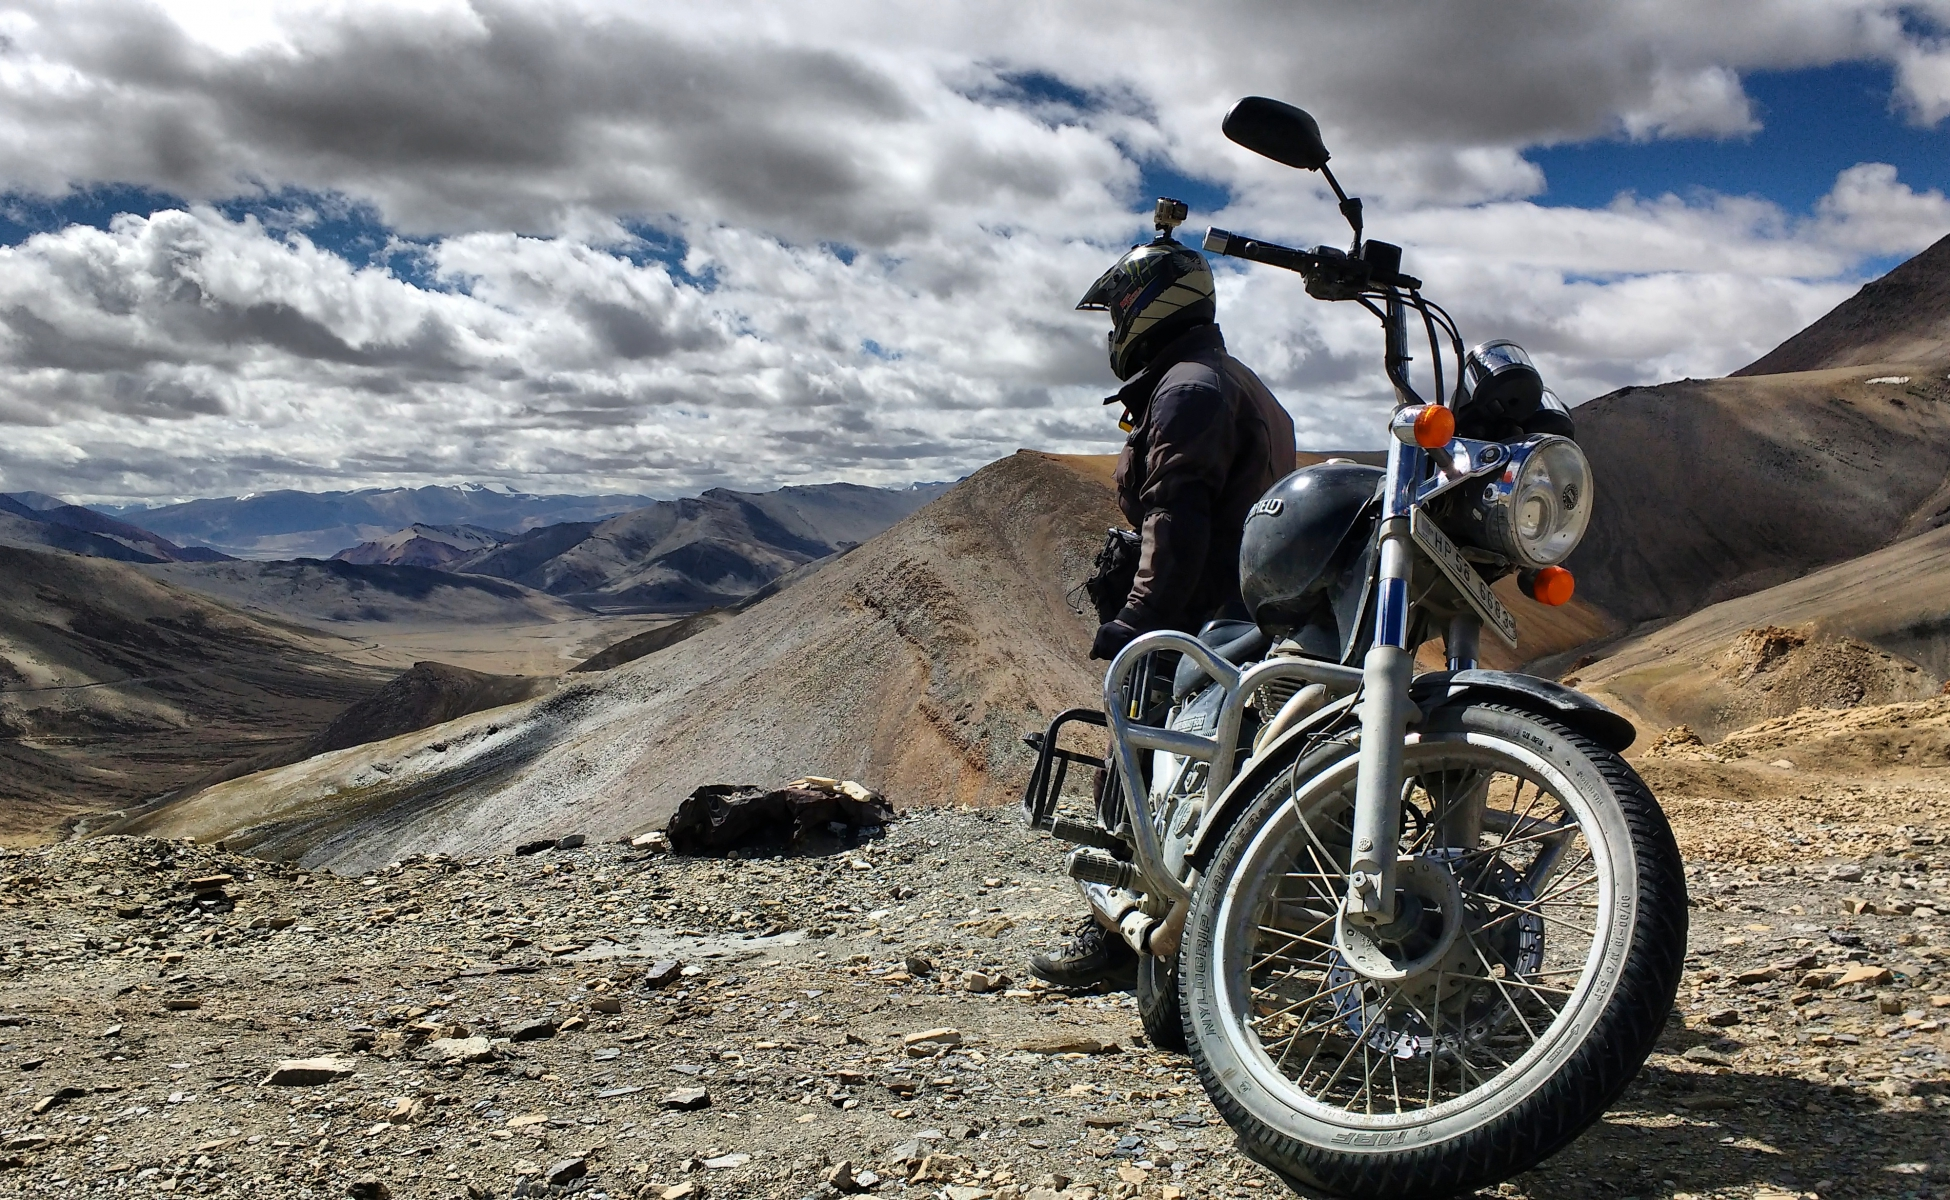 On the heights of ladakh